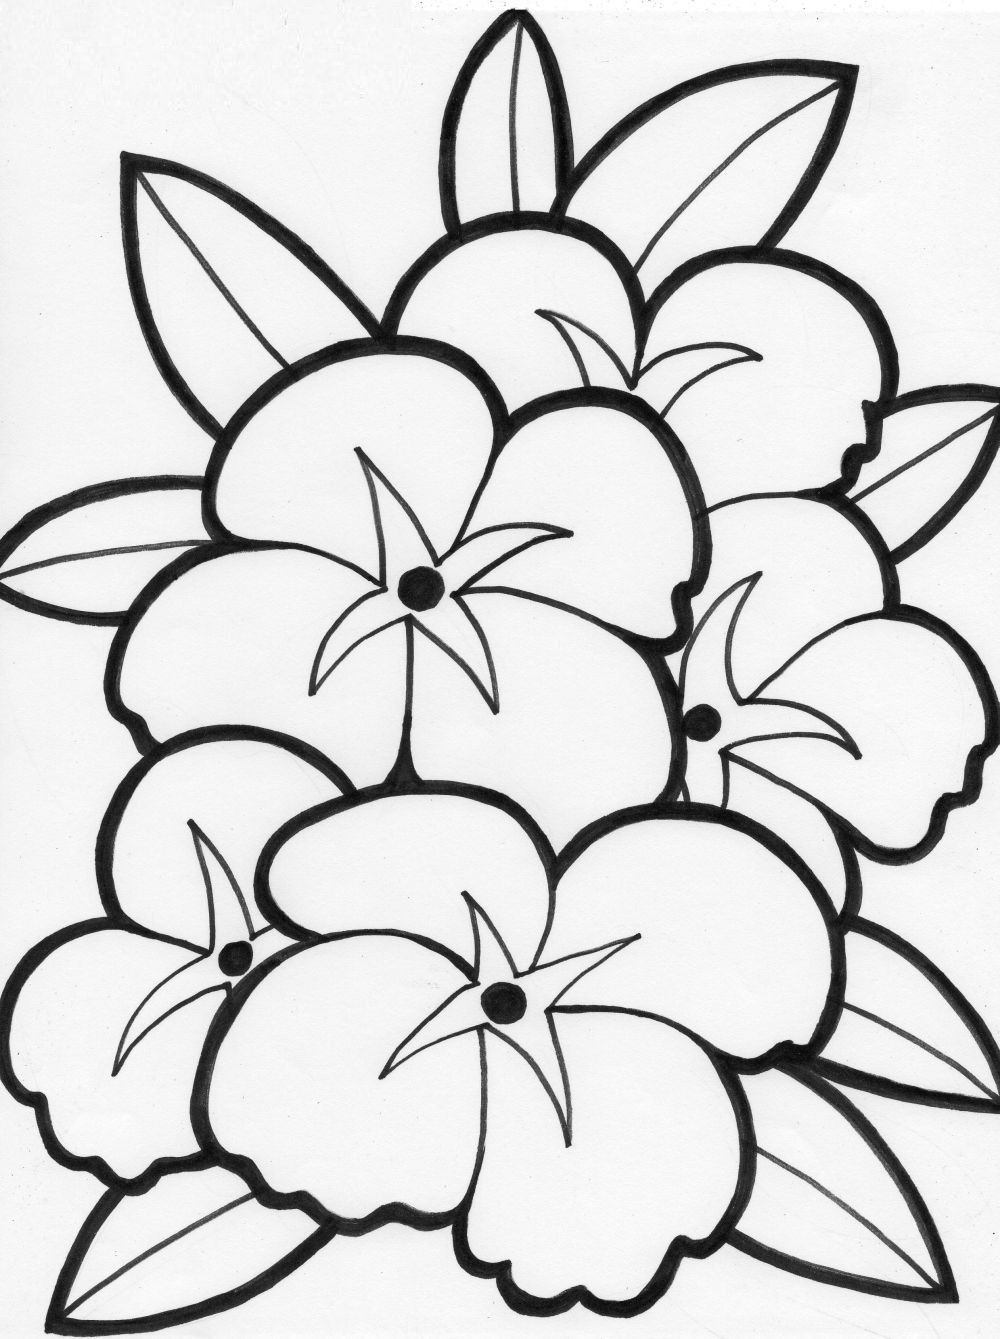 Coloring Pages Of Flowers For Teenagers Difficult Free Online Printable Sheets Kids Get The Latest